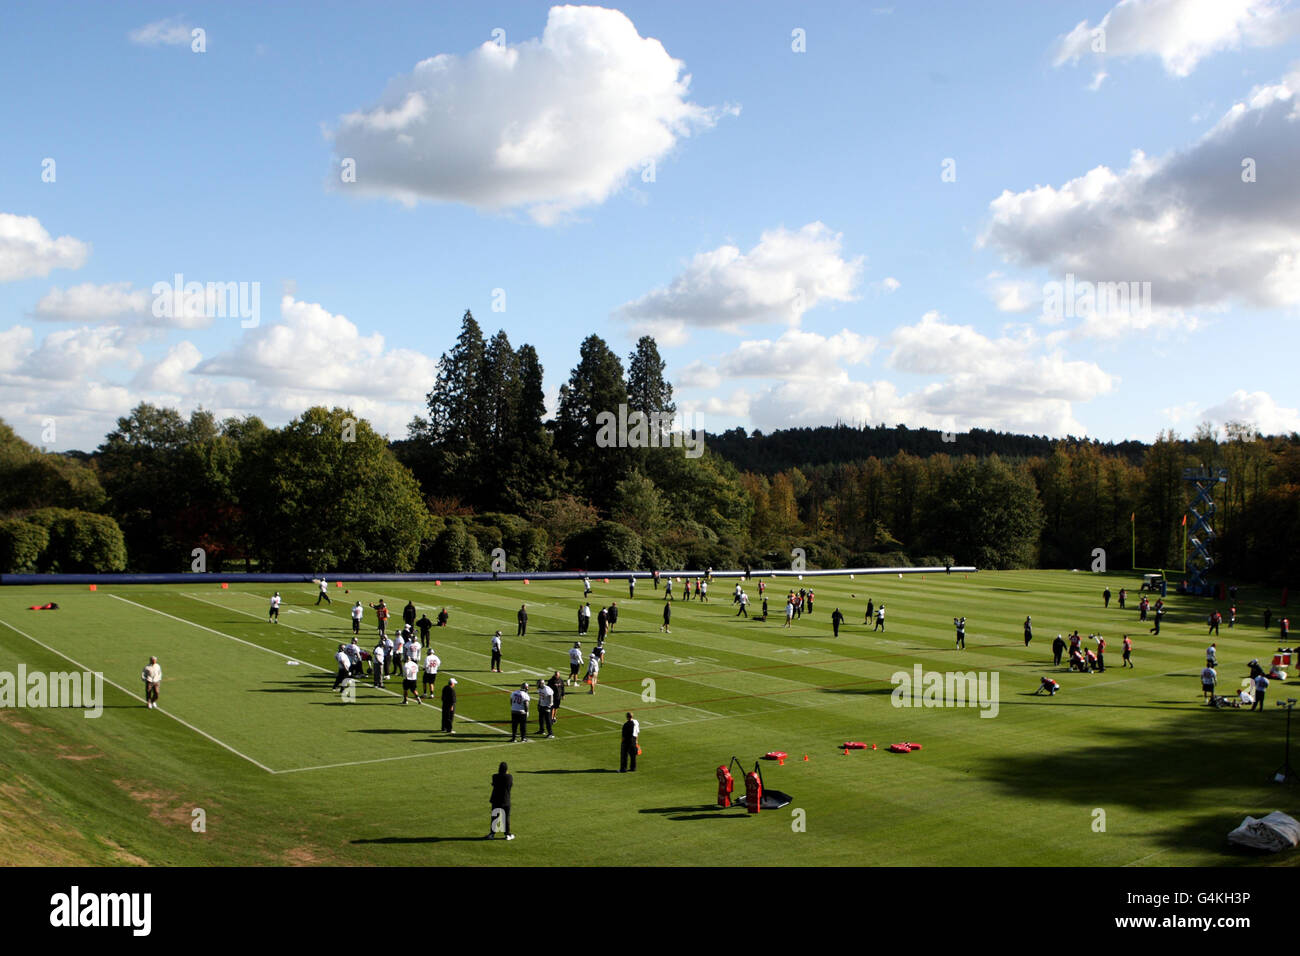 American Football - International Series - Tampa Bay Buccaneers v Chicago Bears - Tampa Bay Buccaneers Training Stock Photo